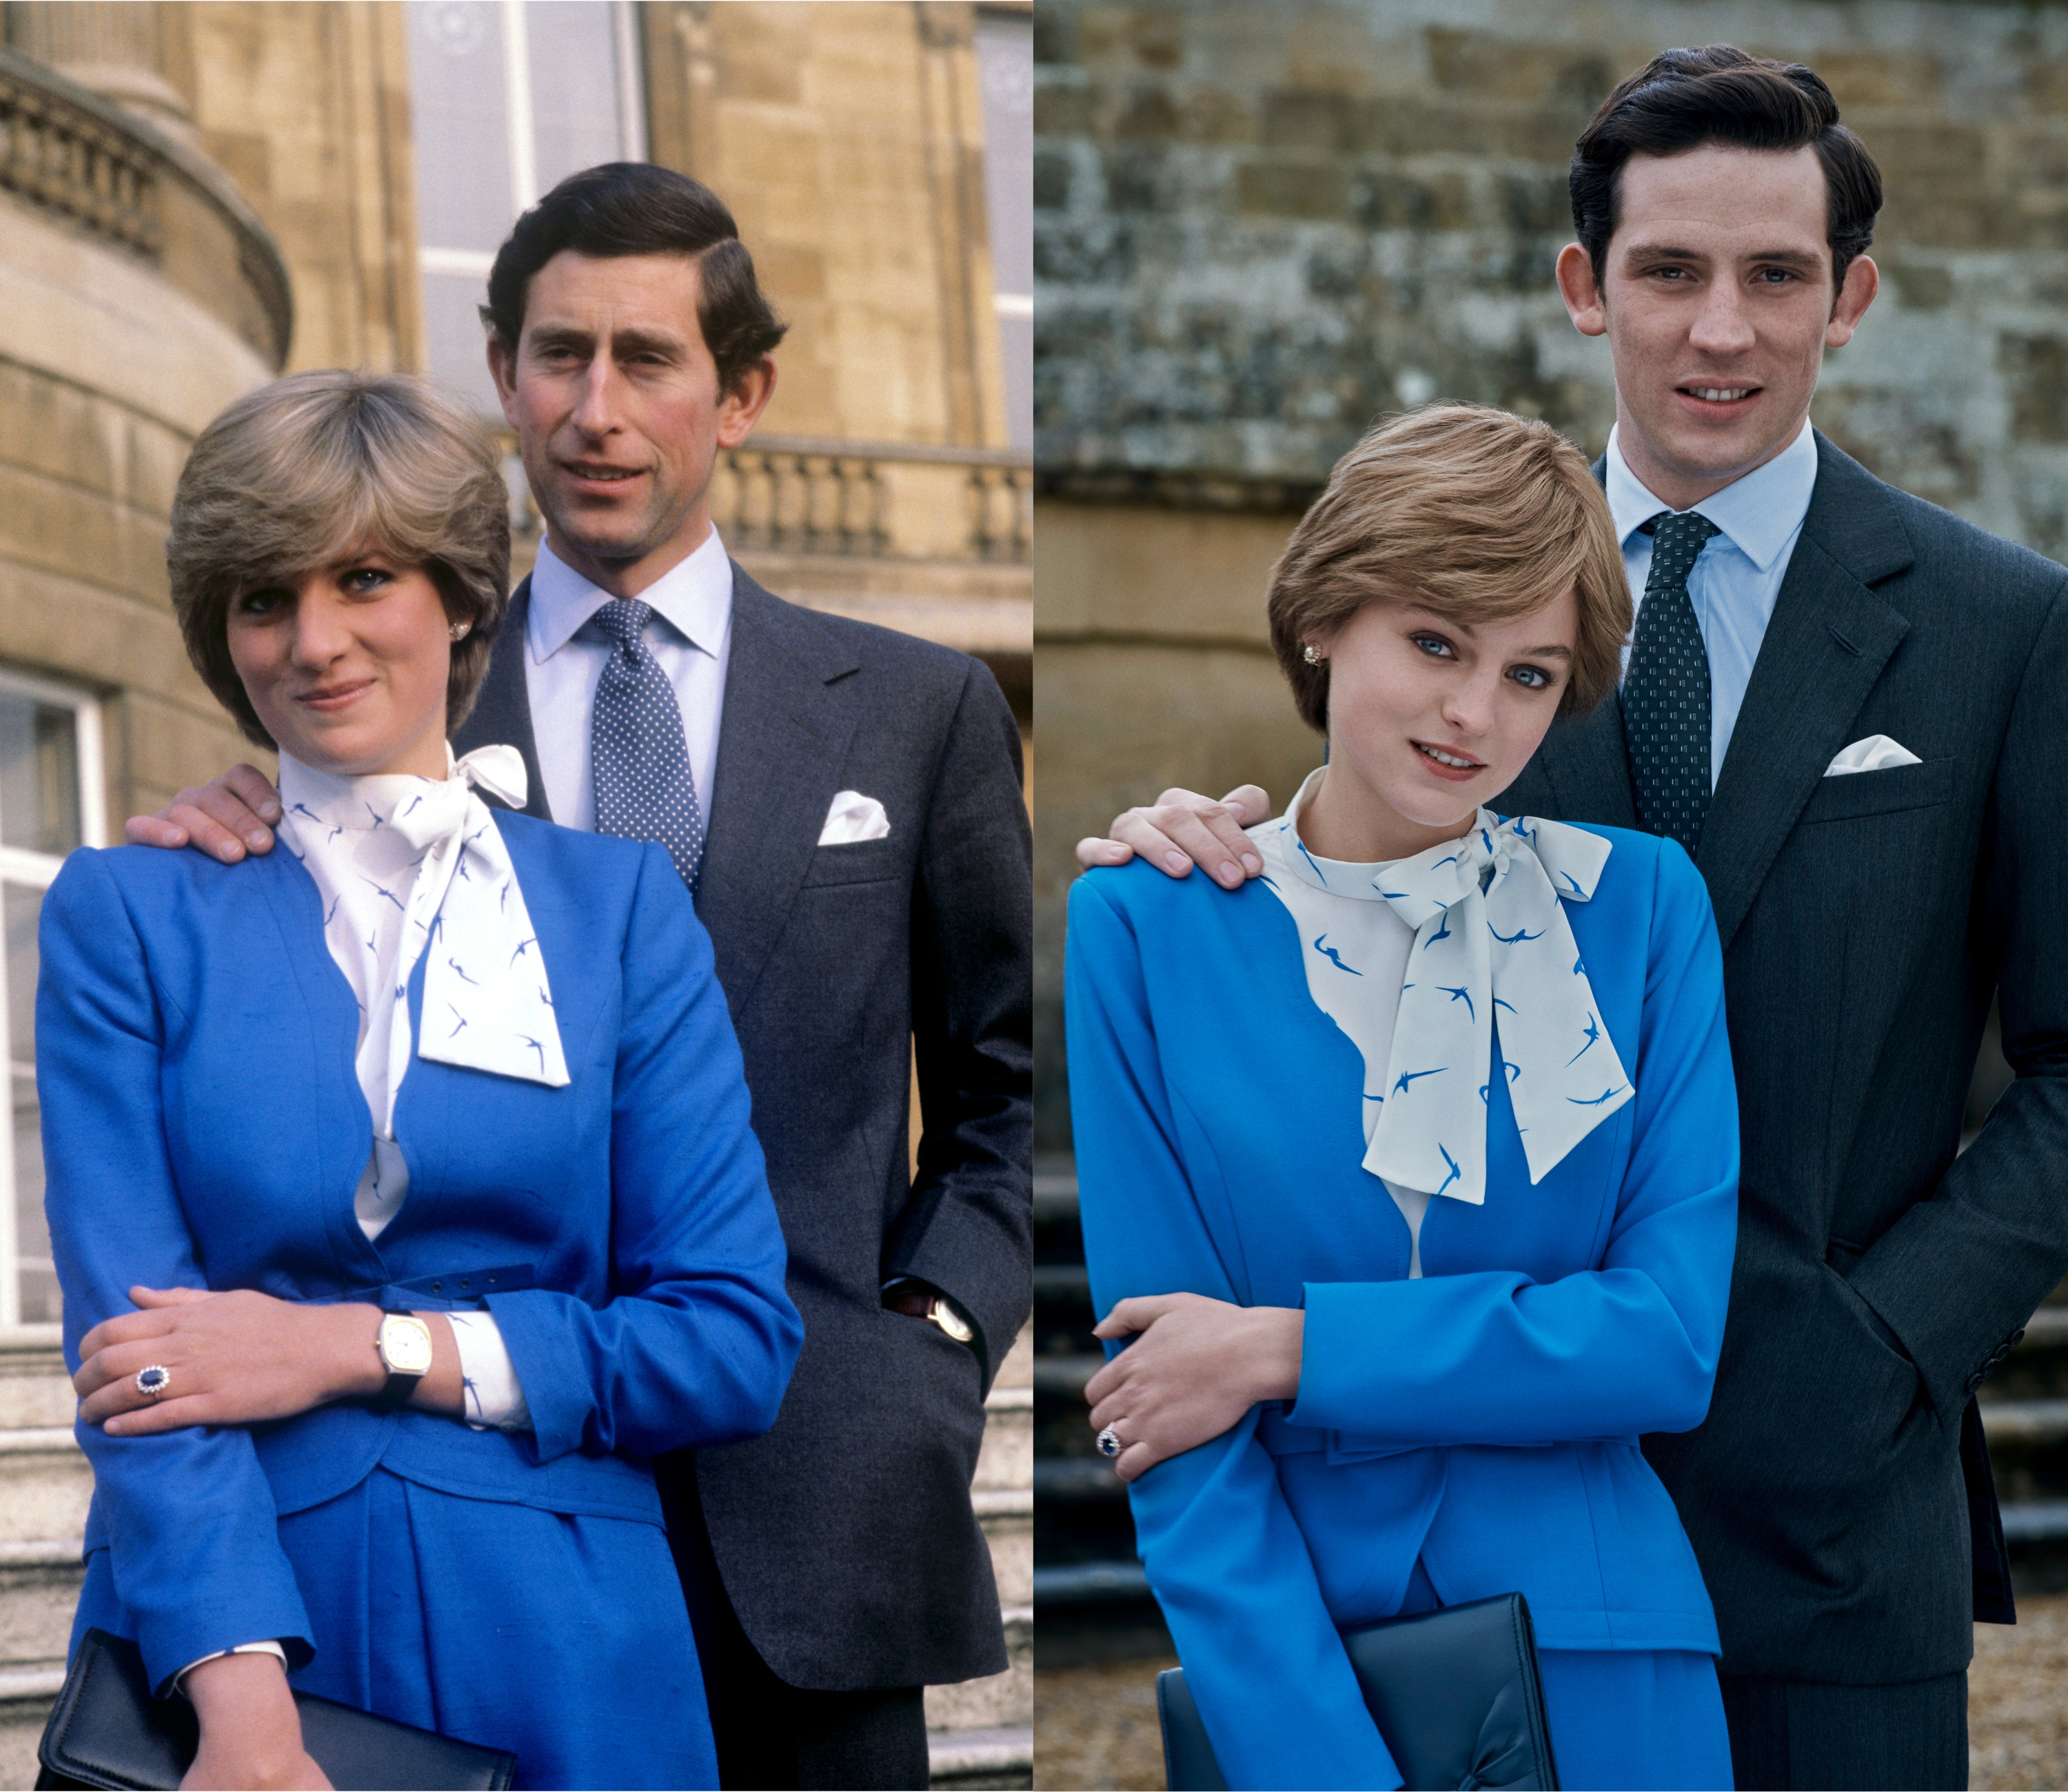 (L) Diana and Charles after announcing their engagement in 1981 and (R) Emma Corrin and Josh O'Connor recreate the moment